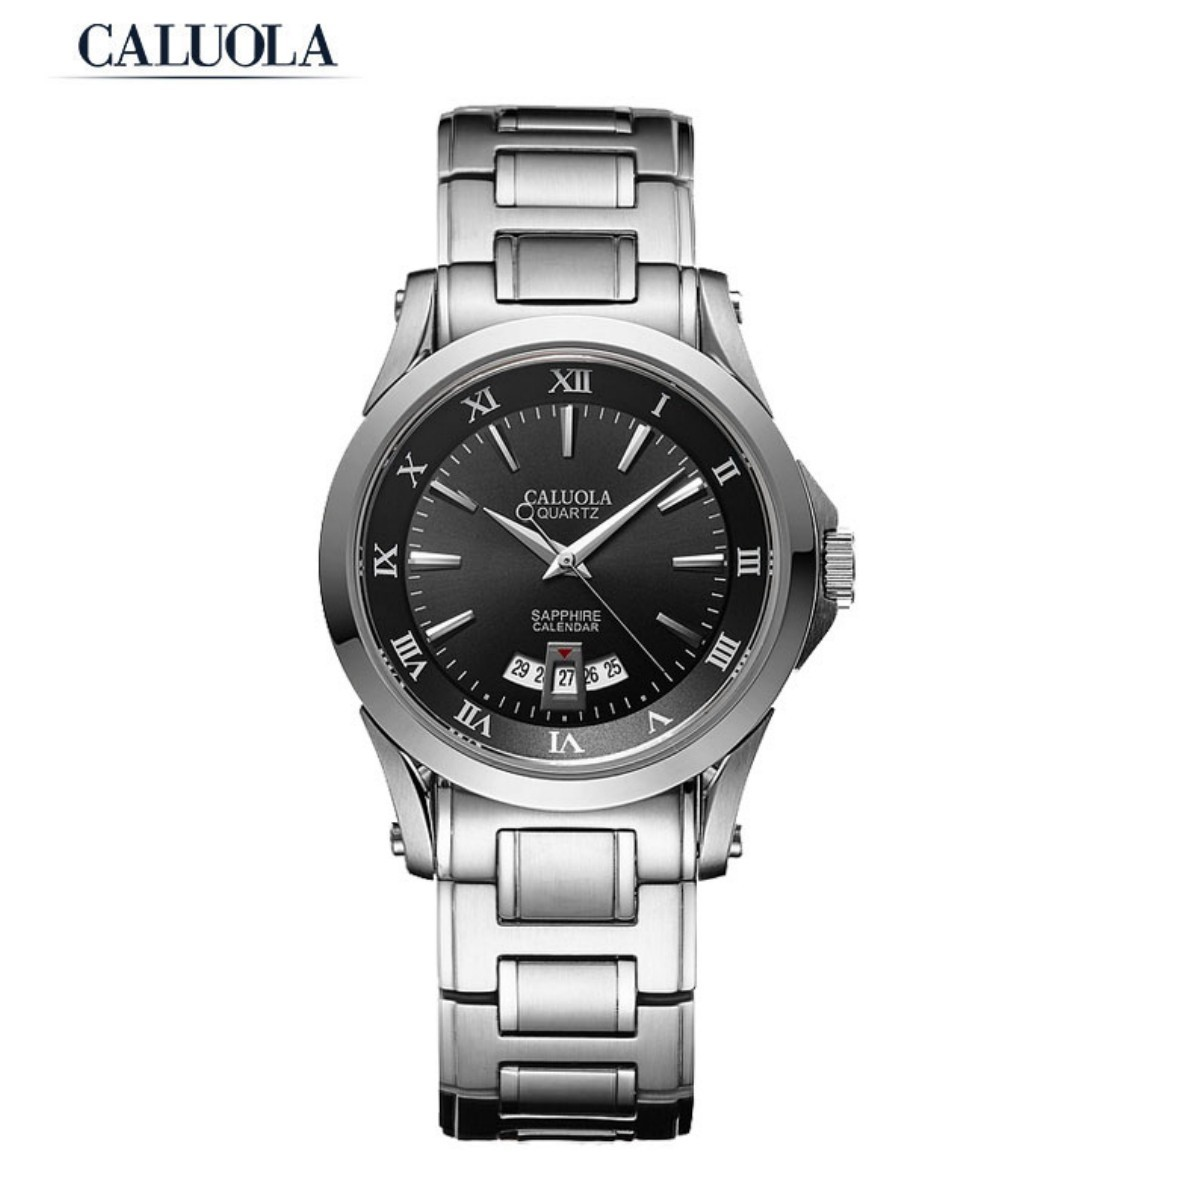 Caluola Men Watch 40mm Steel CA1006